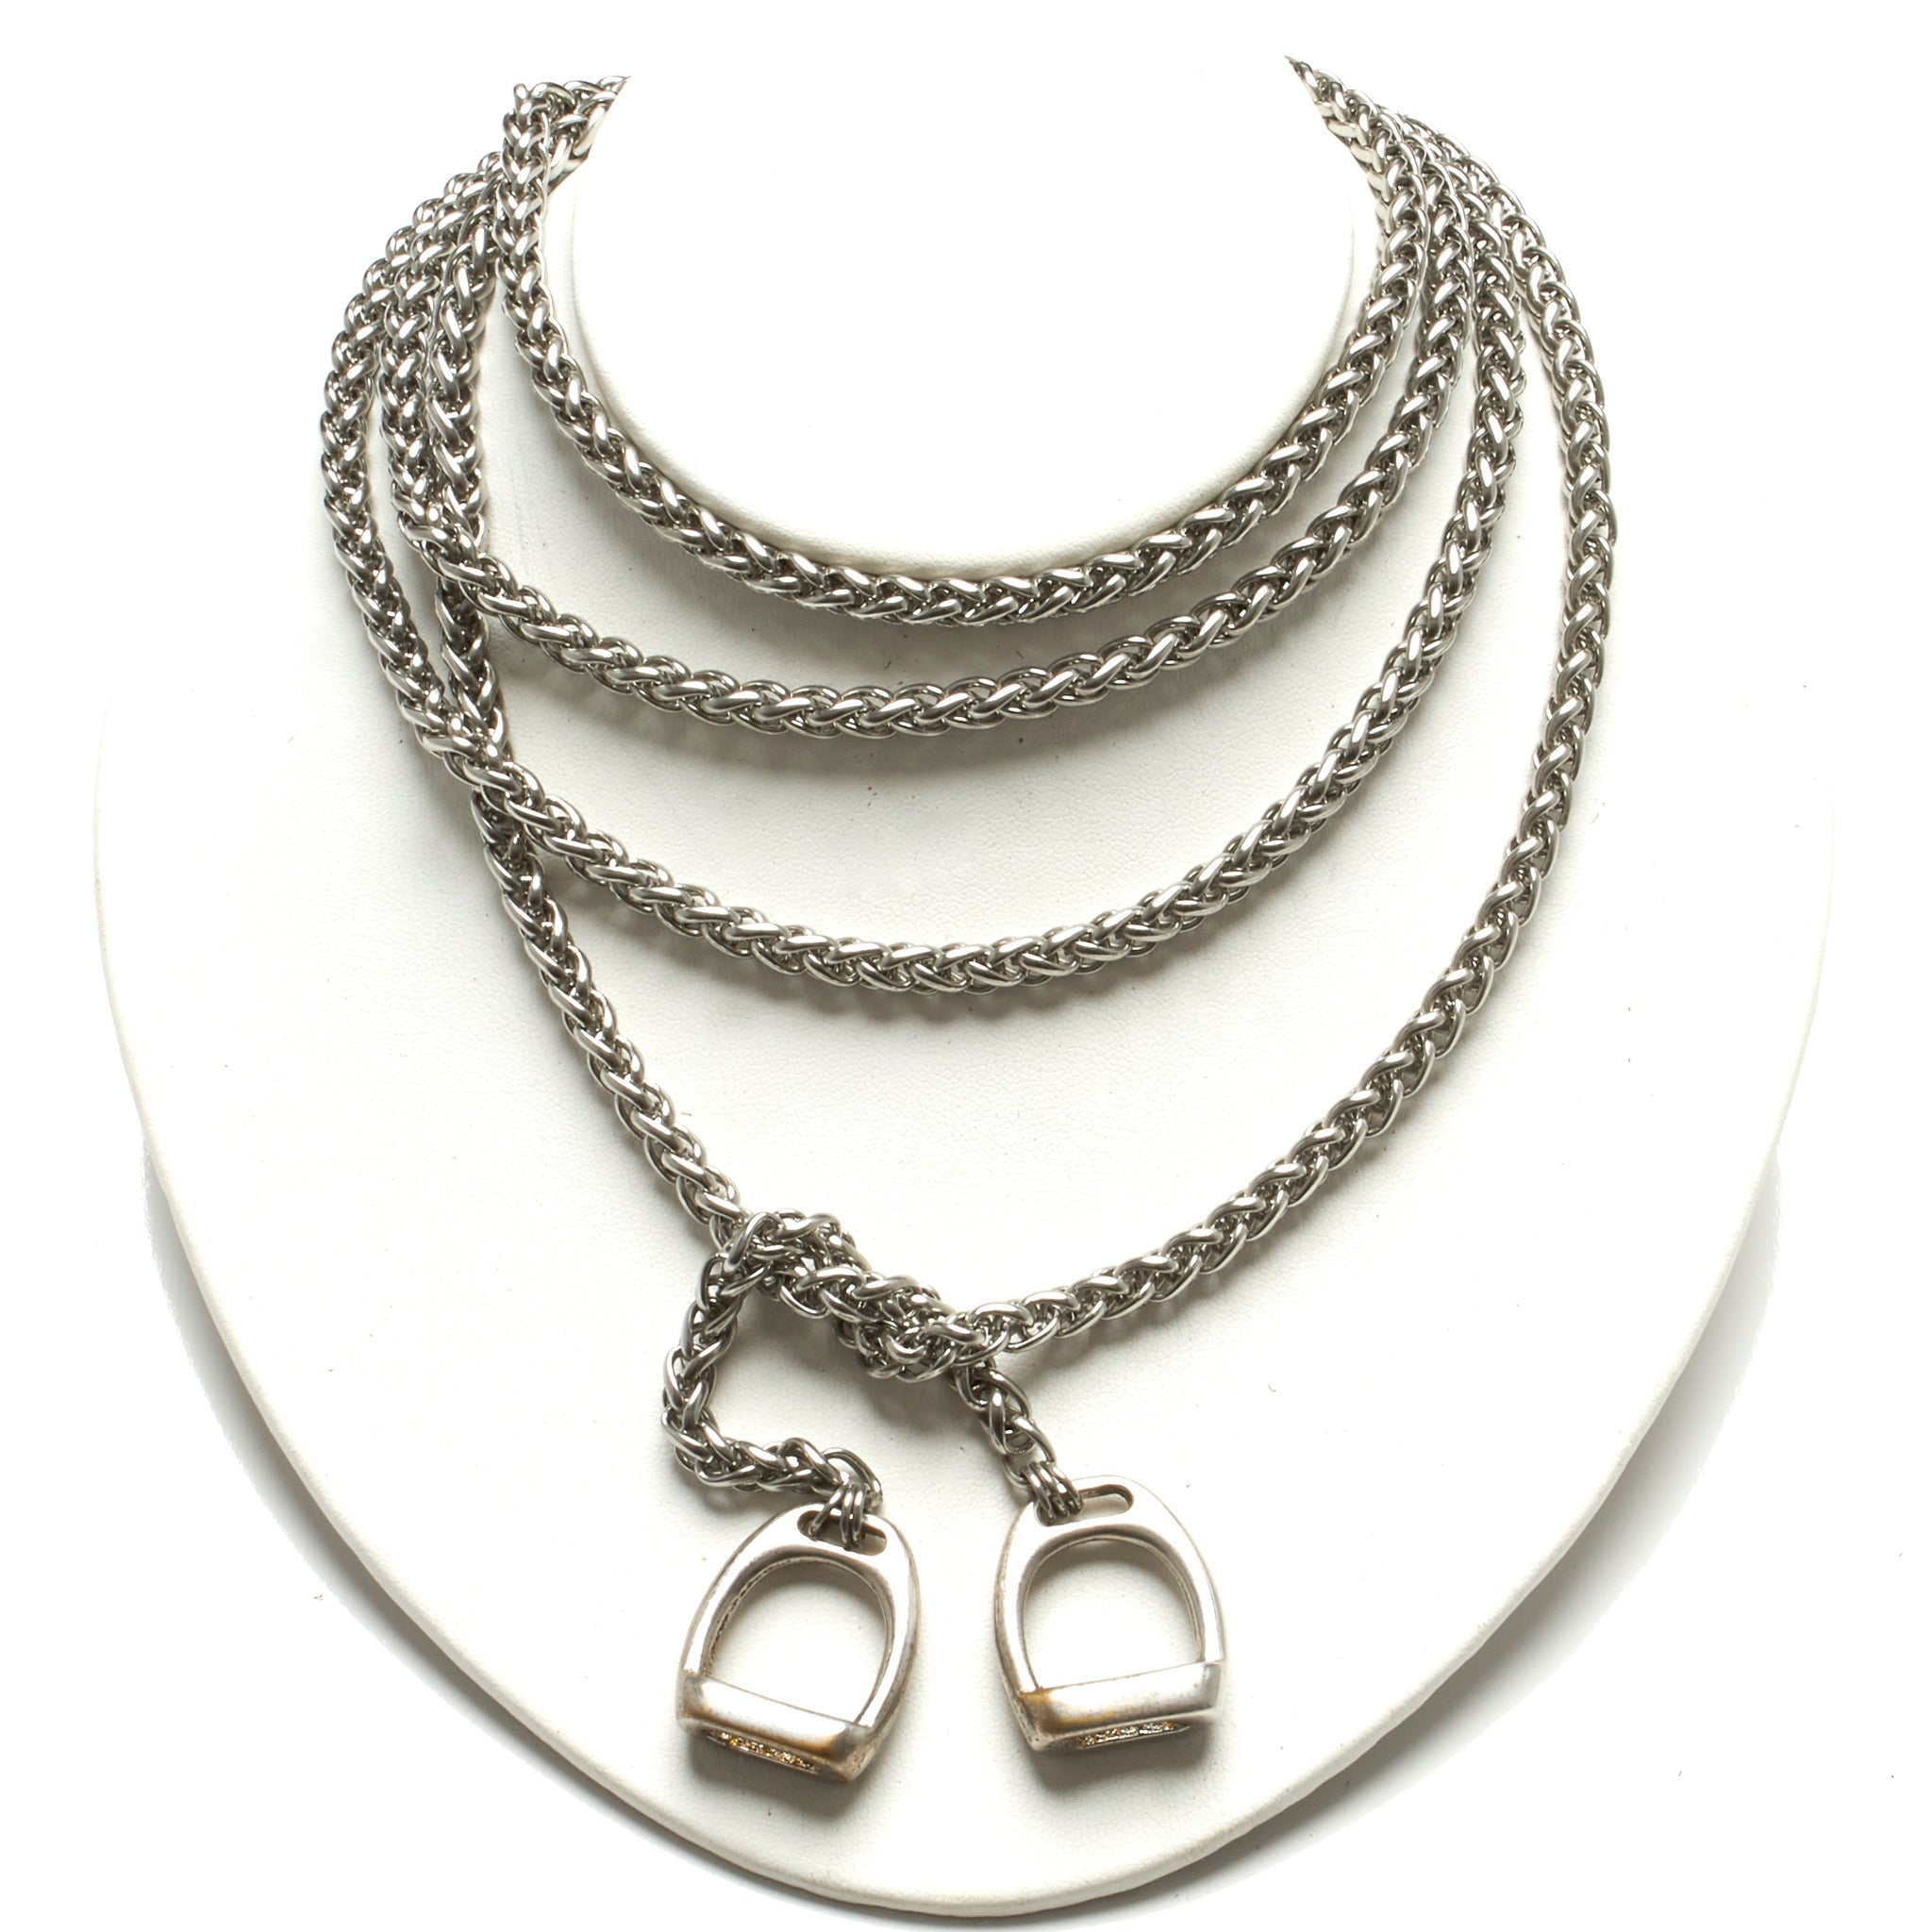 Extra Long Stainless Steel Lariat With stirrups by nyet jewelry.